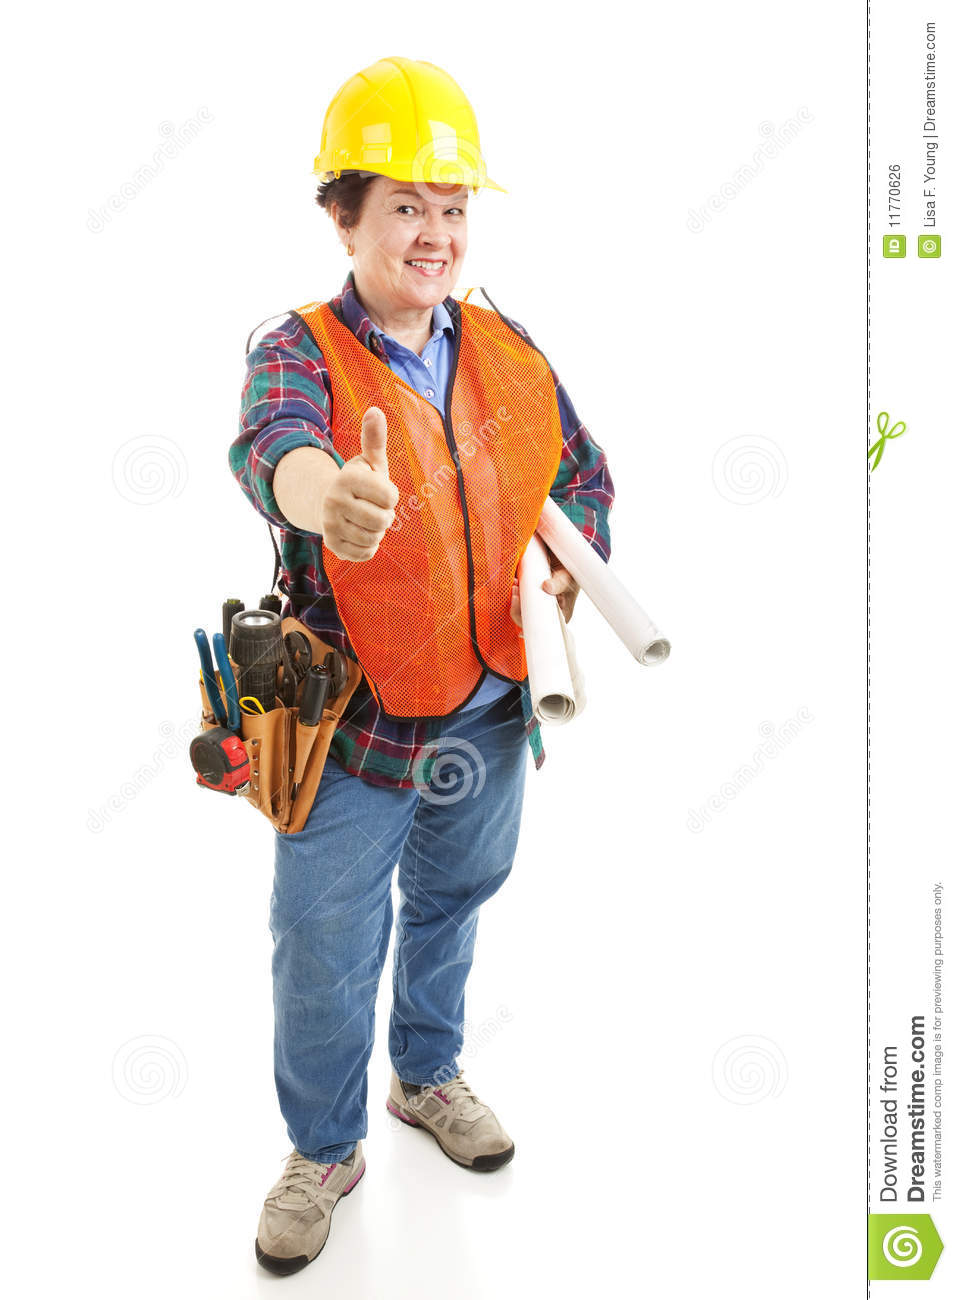 Female Contractor Thumbsup Royalty Free Stock Image